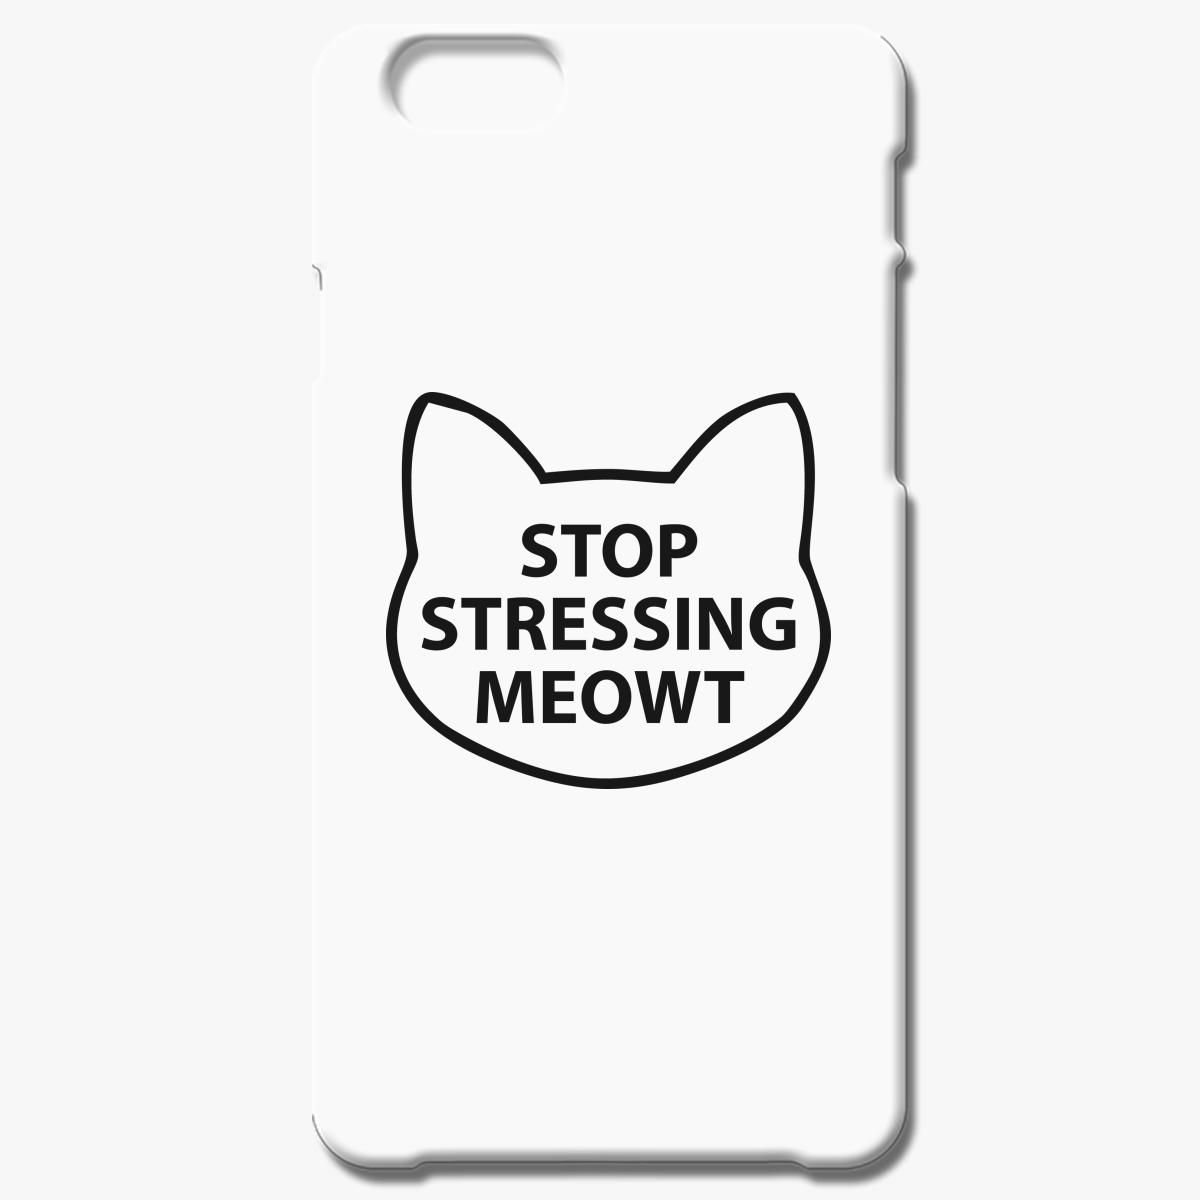 Stop Stressing Meowt Iphone 7 Plus Case